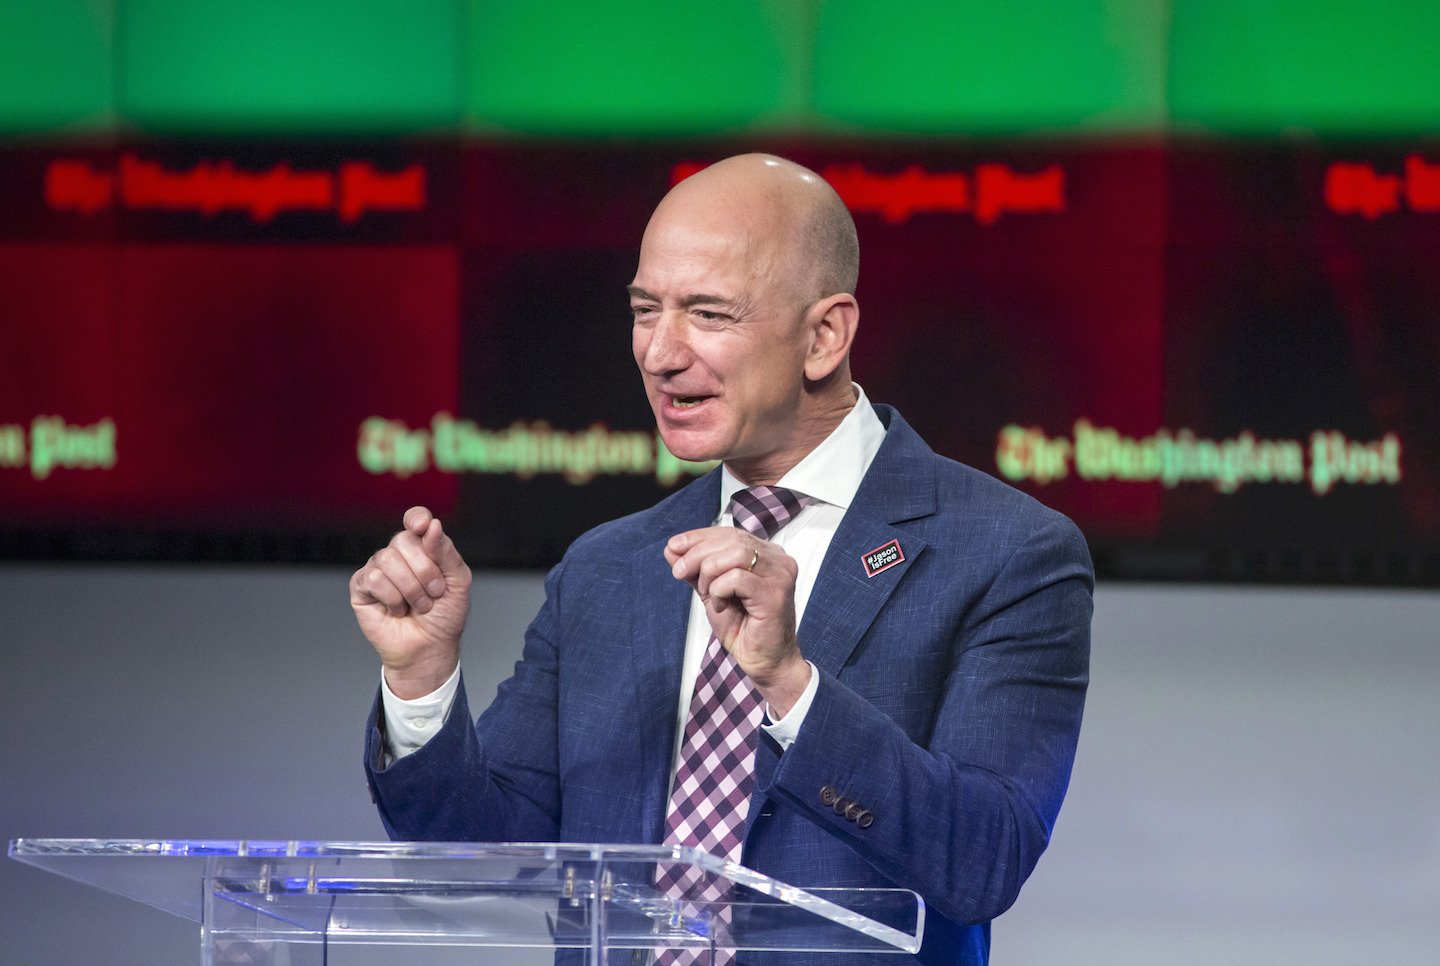 5 Things Publishers Can Learn From How Jeff Bezos Is Running The